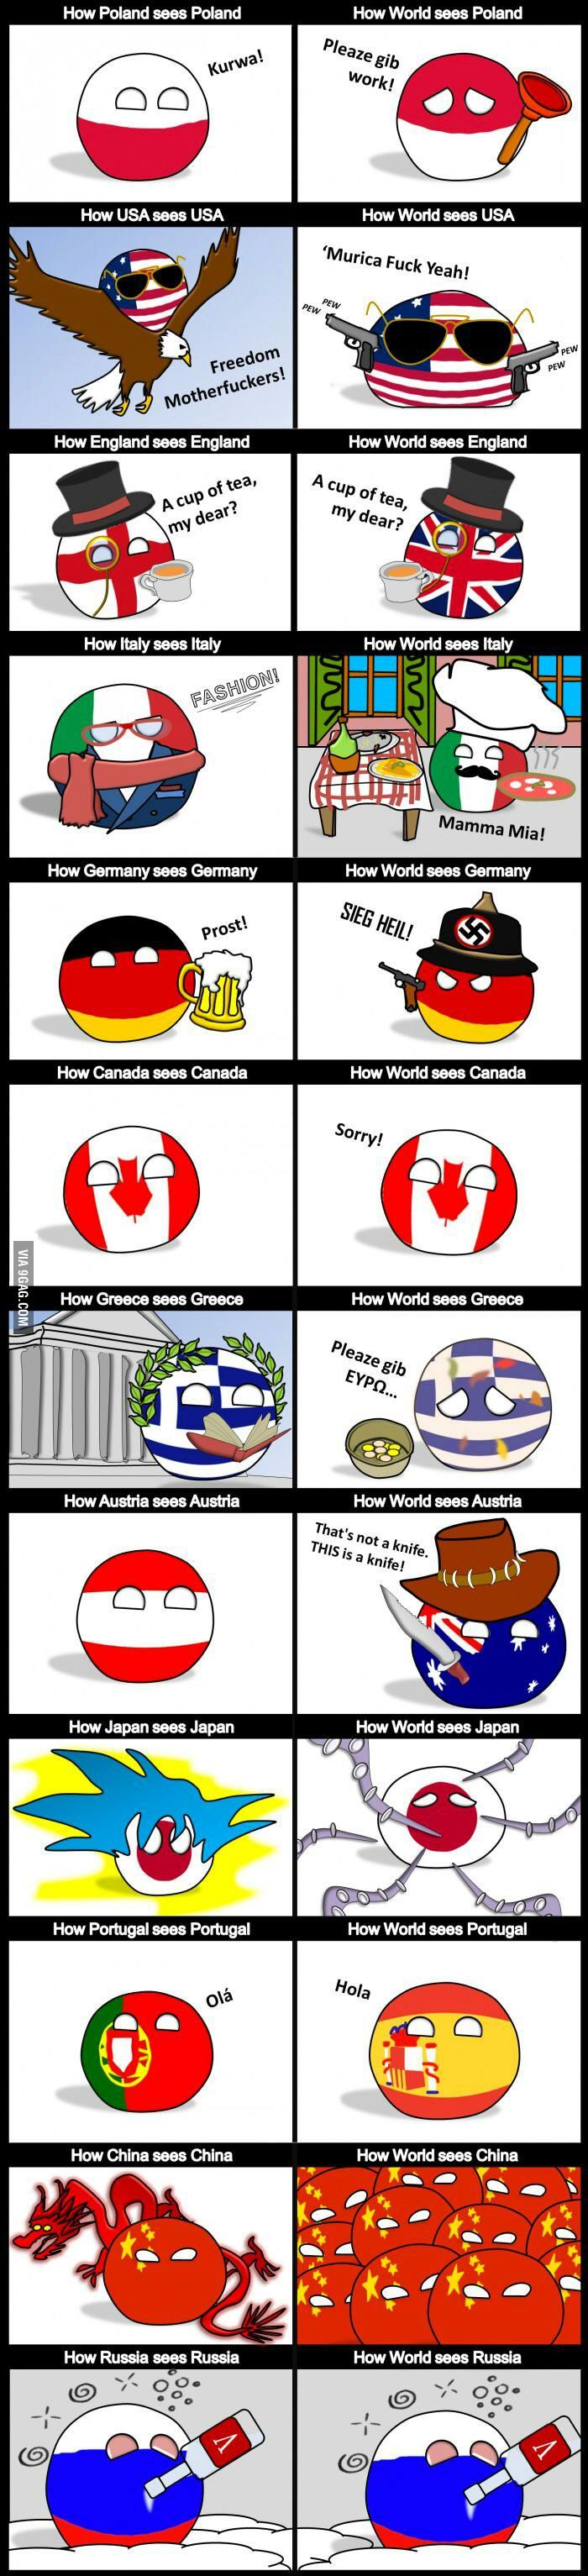 How does each country perceive themselves compared to the world's perspective? #9Gag #funny #humor